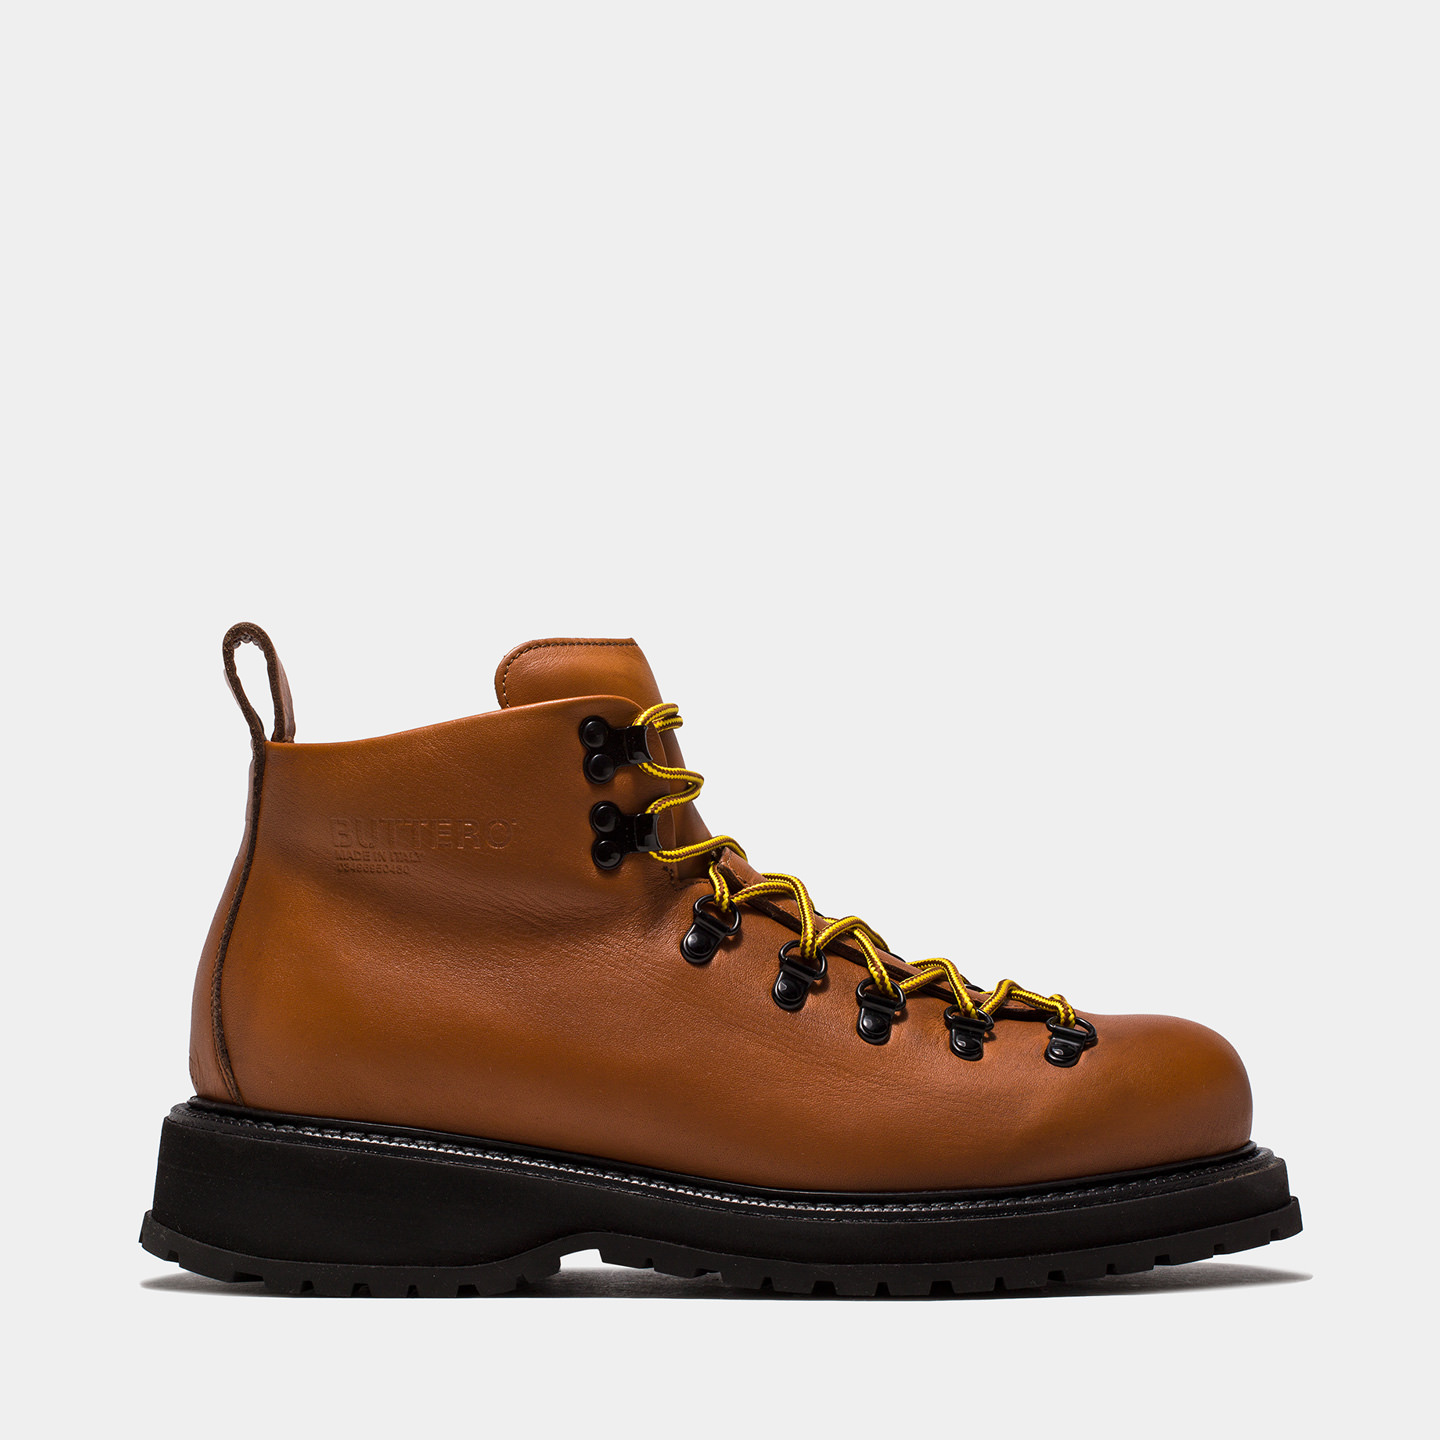 BUTTERO: ZENO HIKING BOOTS IN NATURAL BROWN PULL EFFECT LEATHER